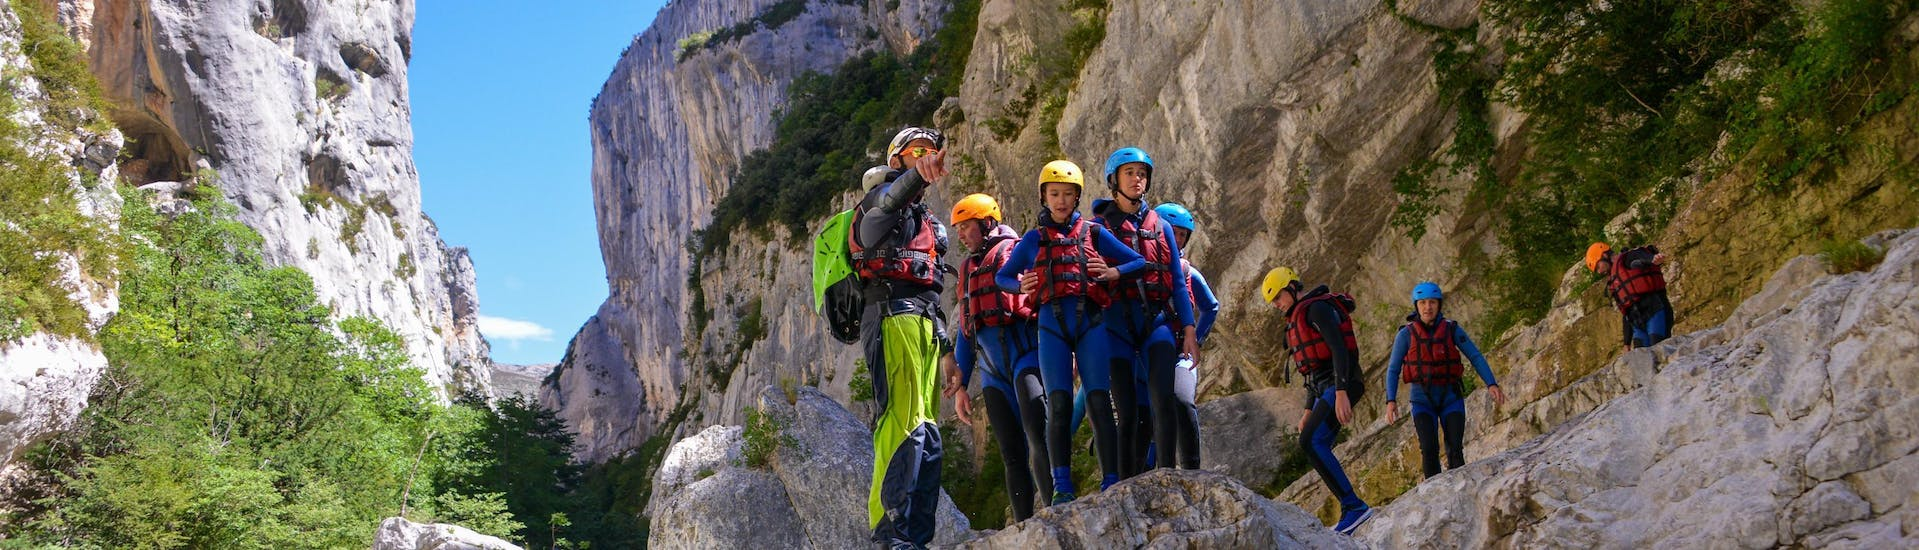 """A group of children is getting ready to jump in the emerald waters of the Gorges du Verdon during their river trekking tour """"Couloir Samson"""" with Yeti Rafting during the low season."""